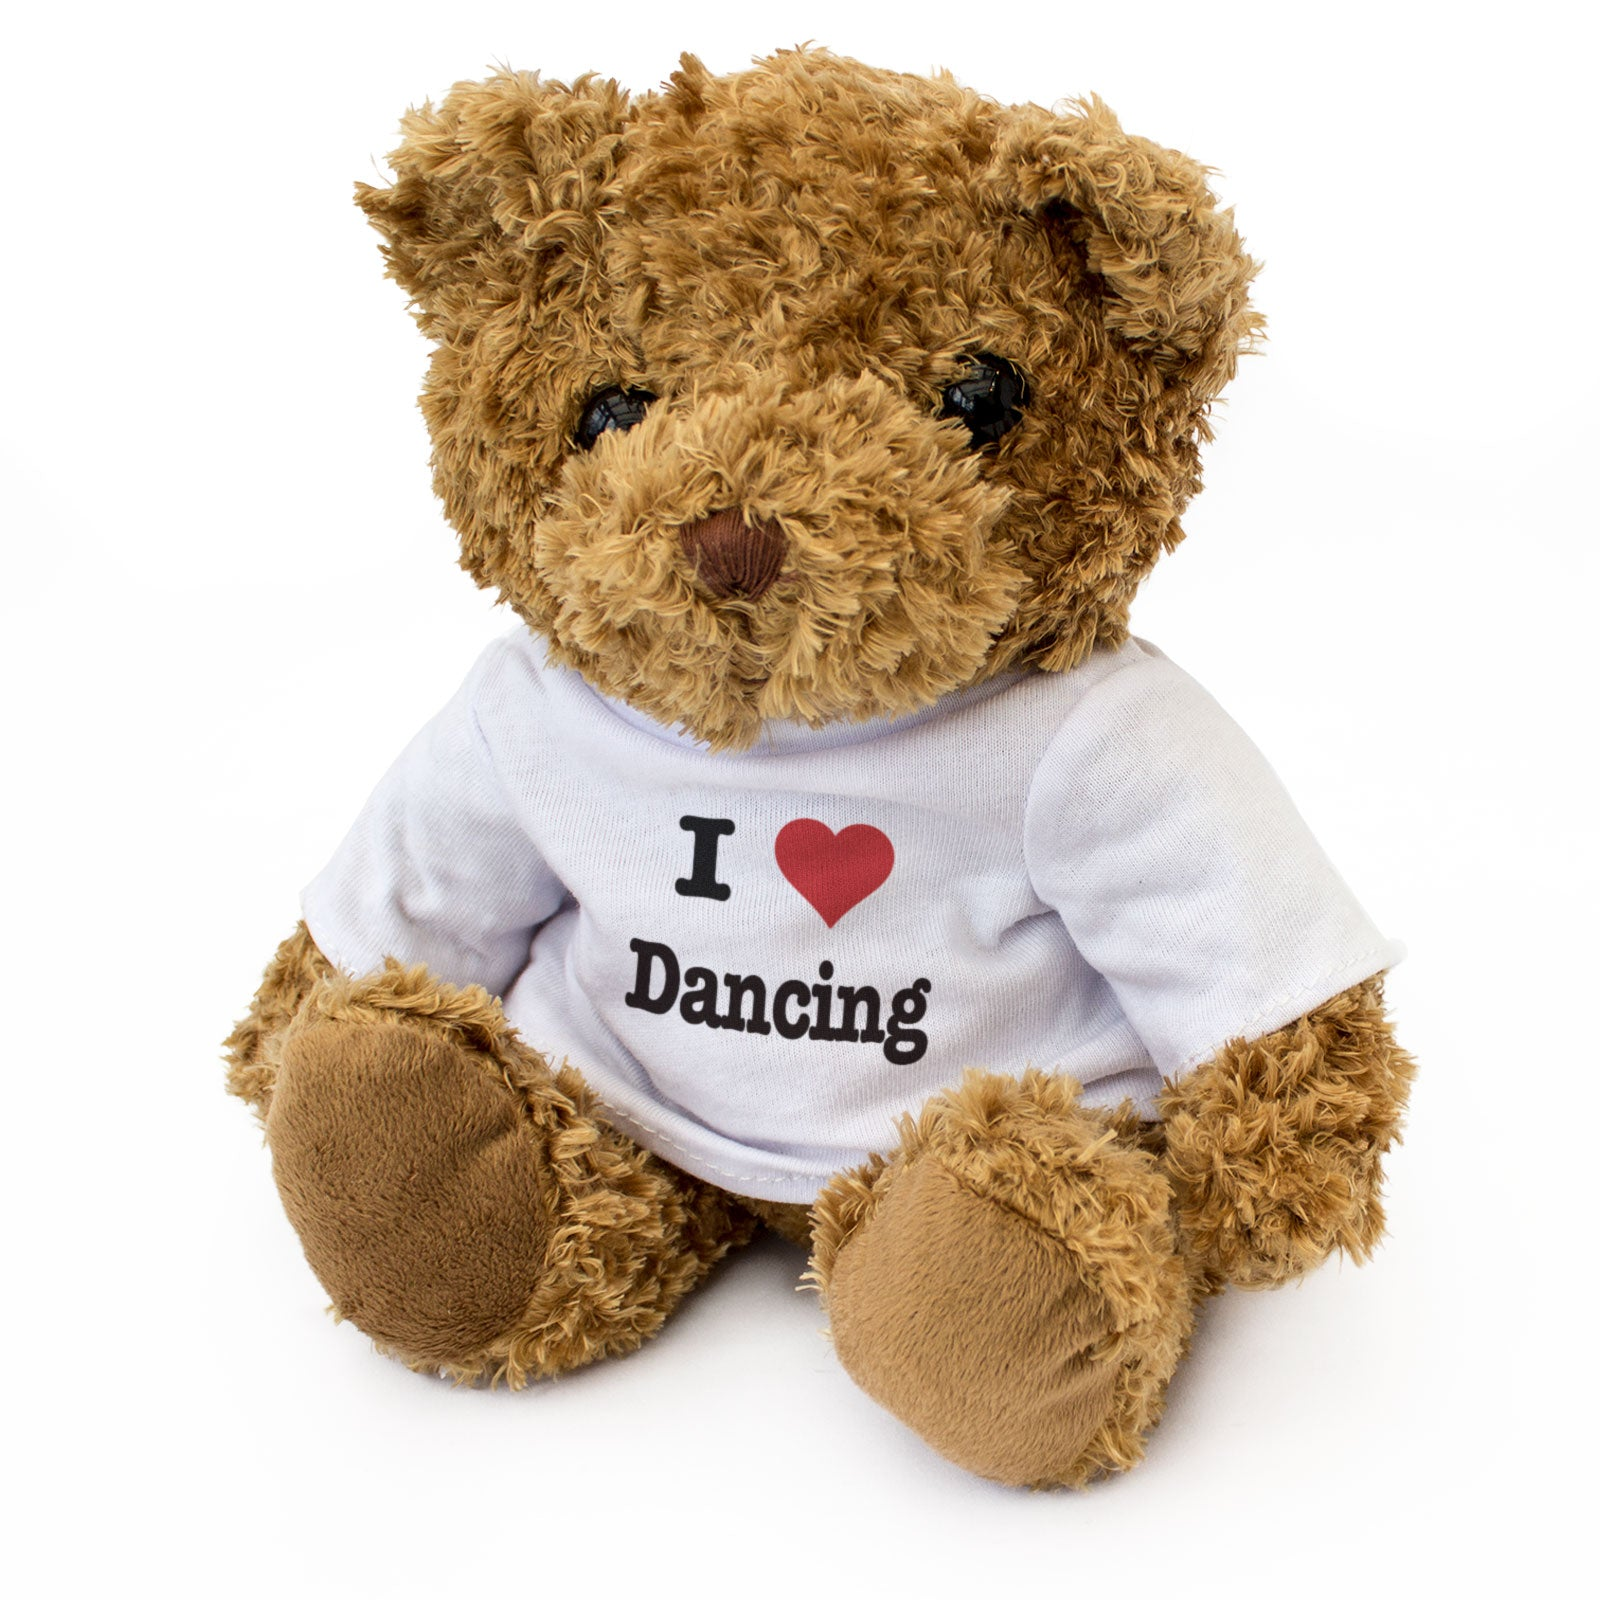 I Love Dancing - Teddy Bear